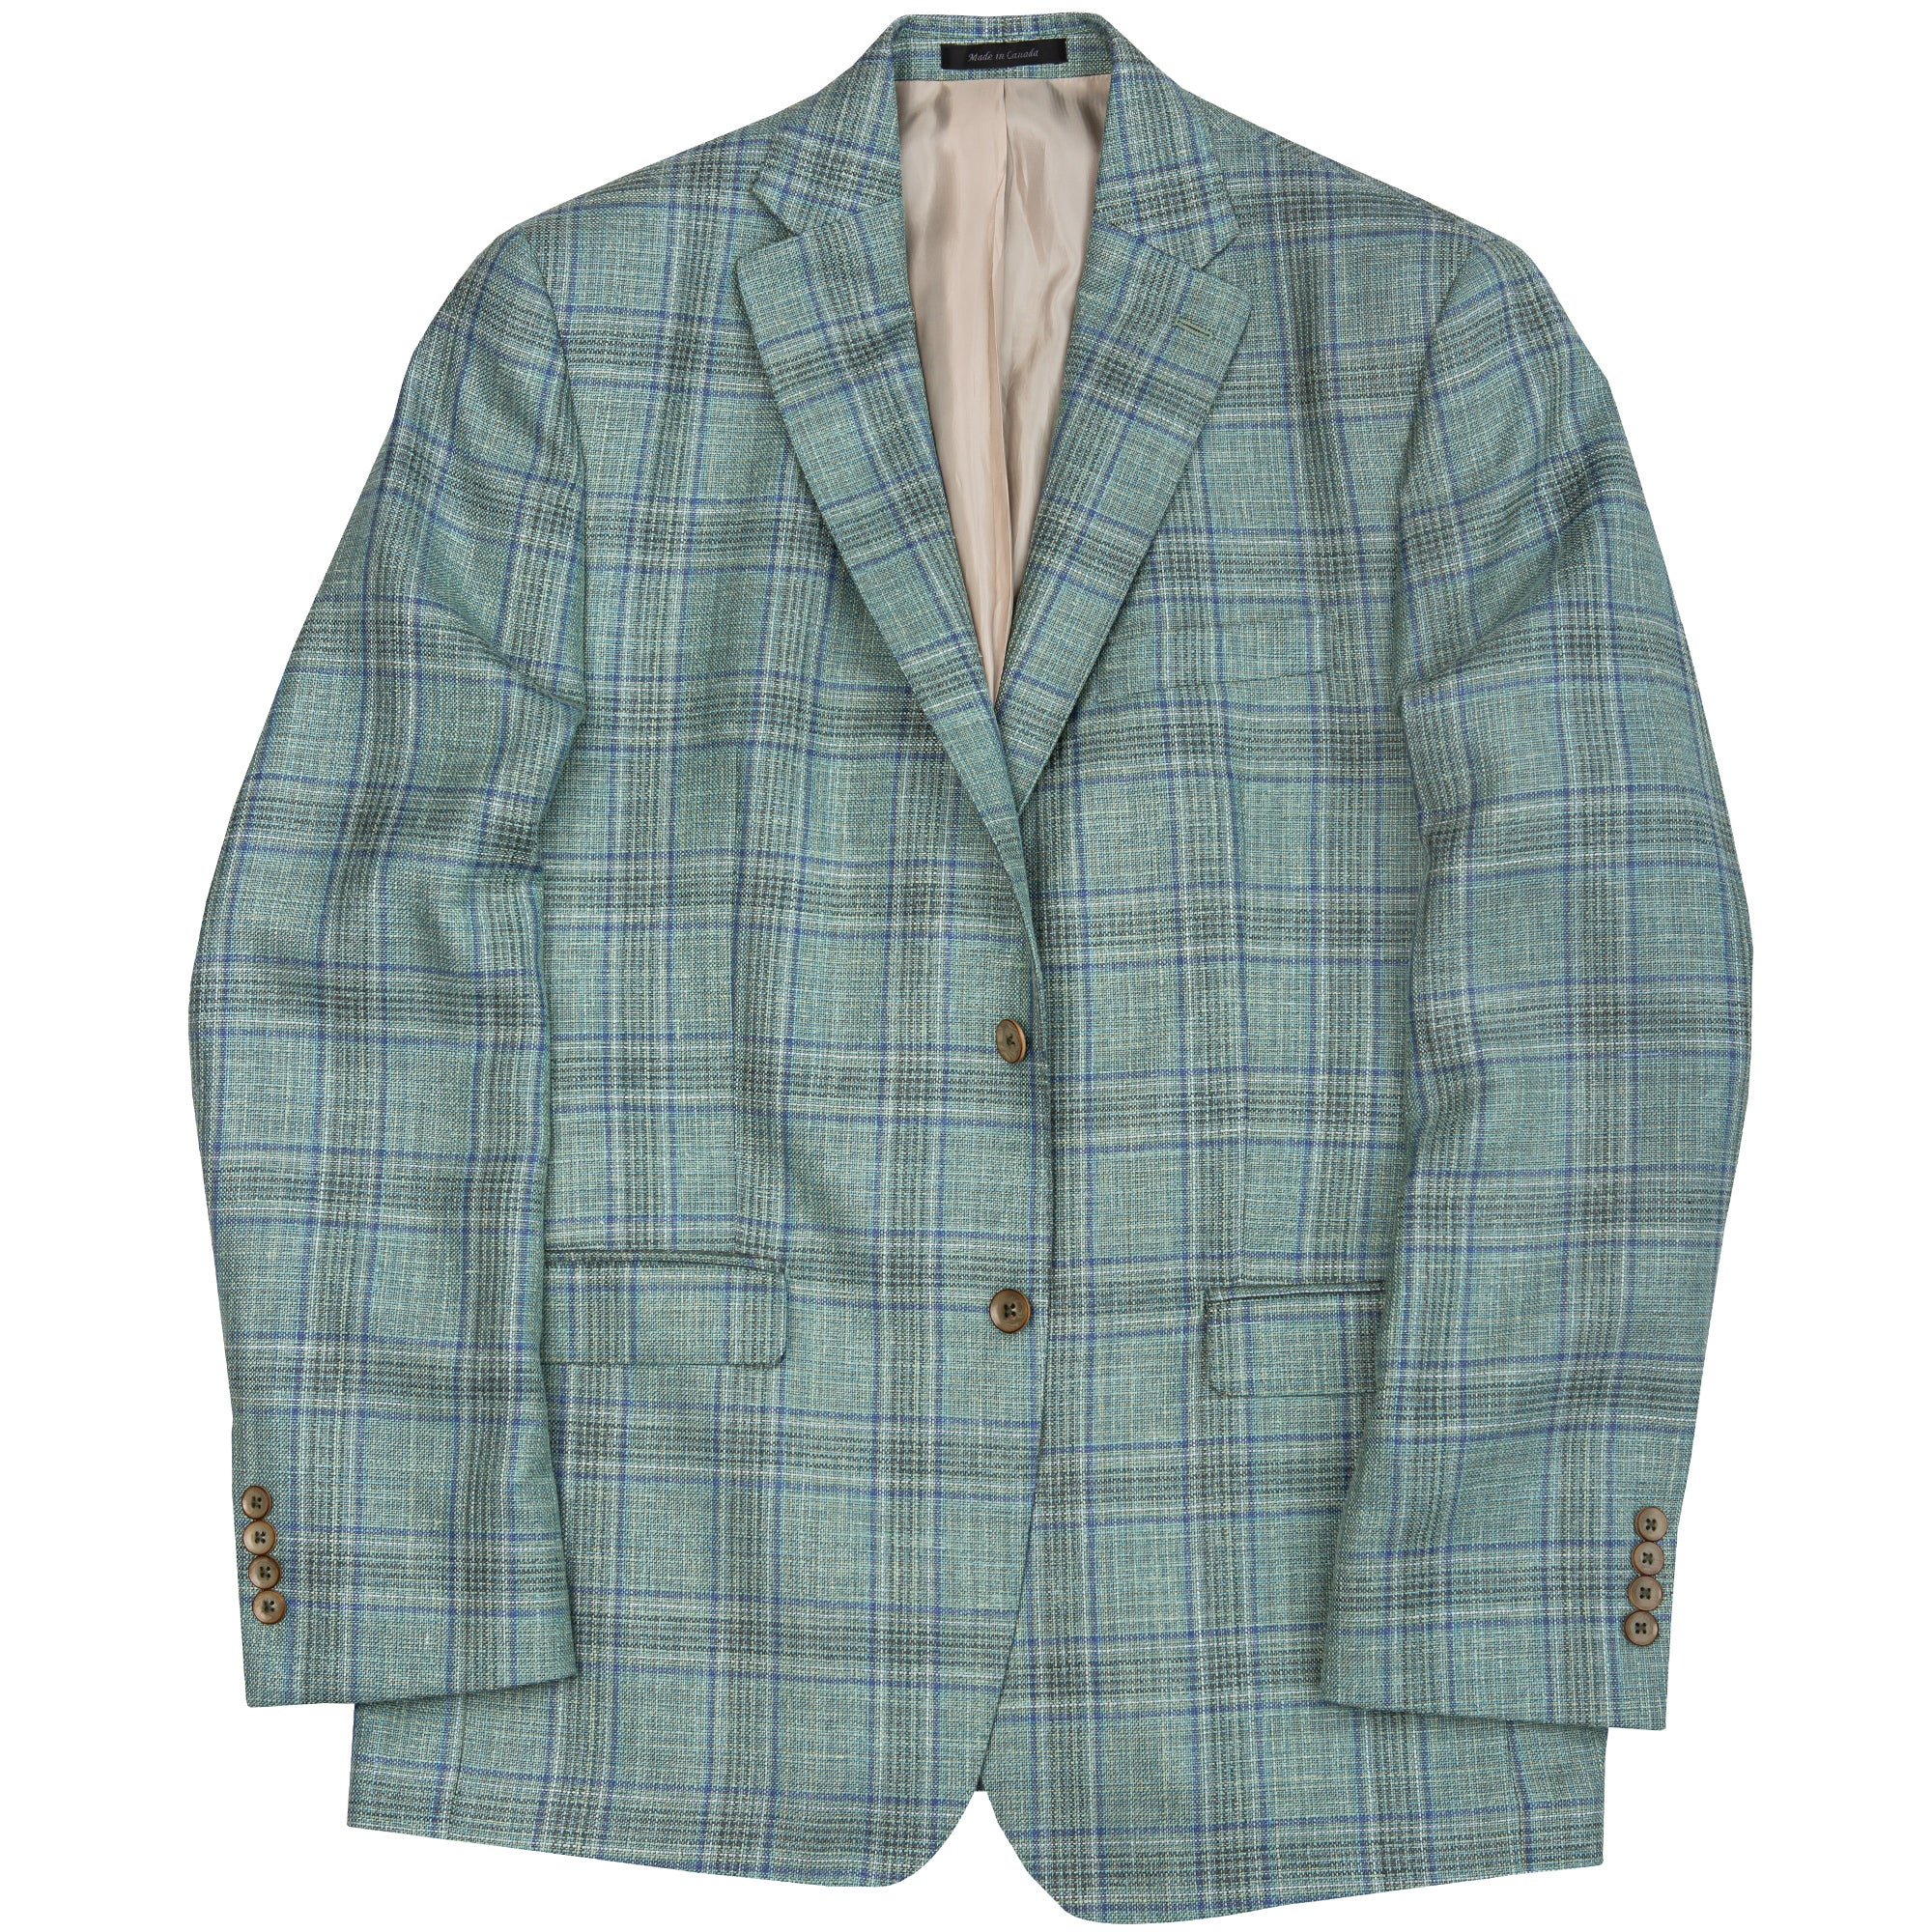 Loro Piana Green Plaid Summertime Sport Coat